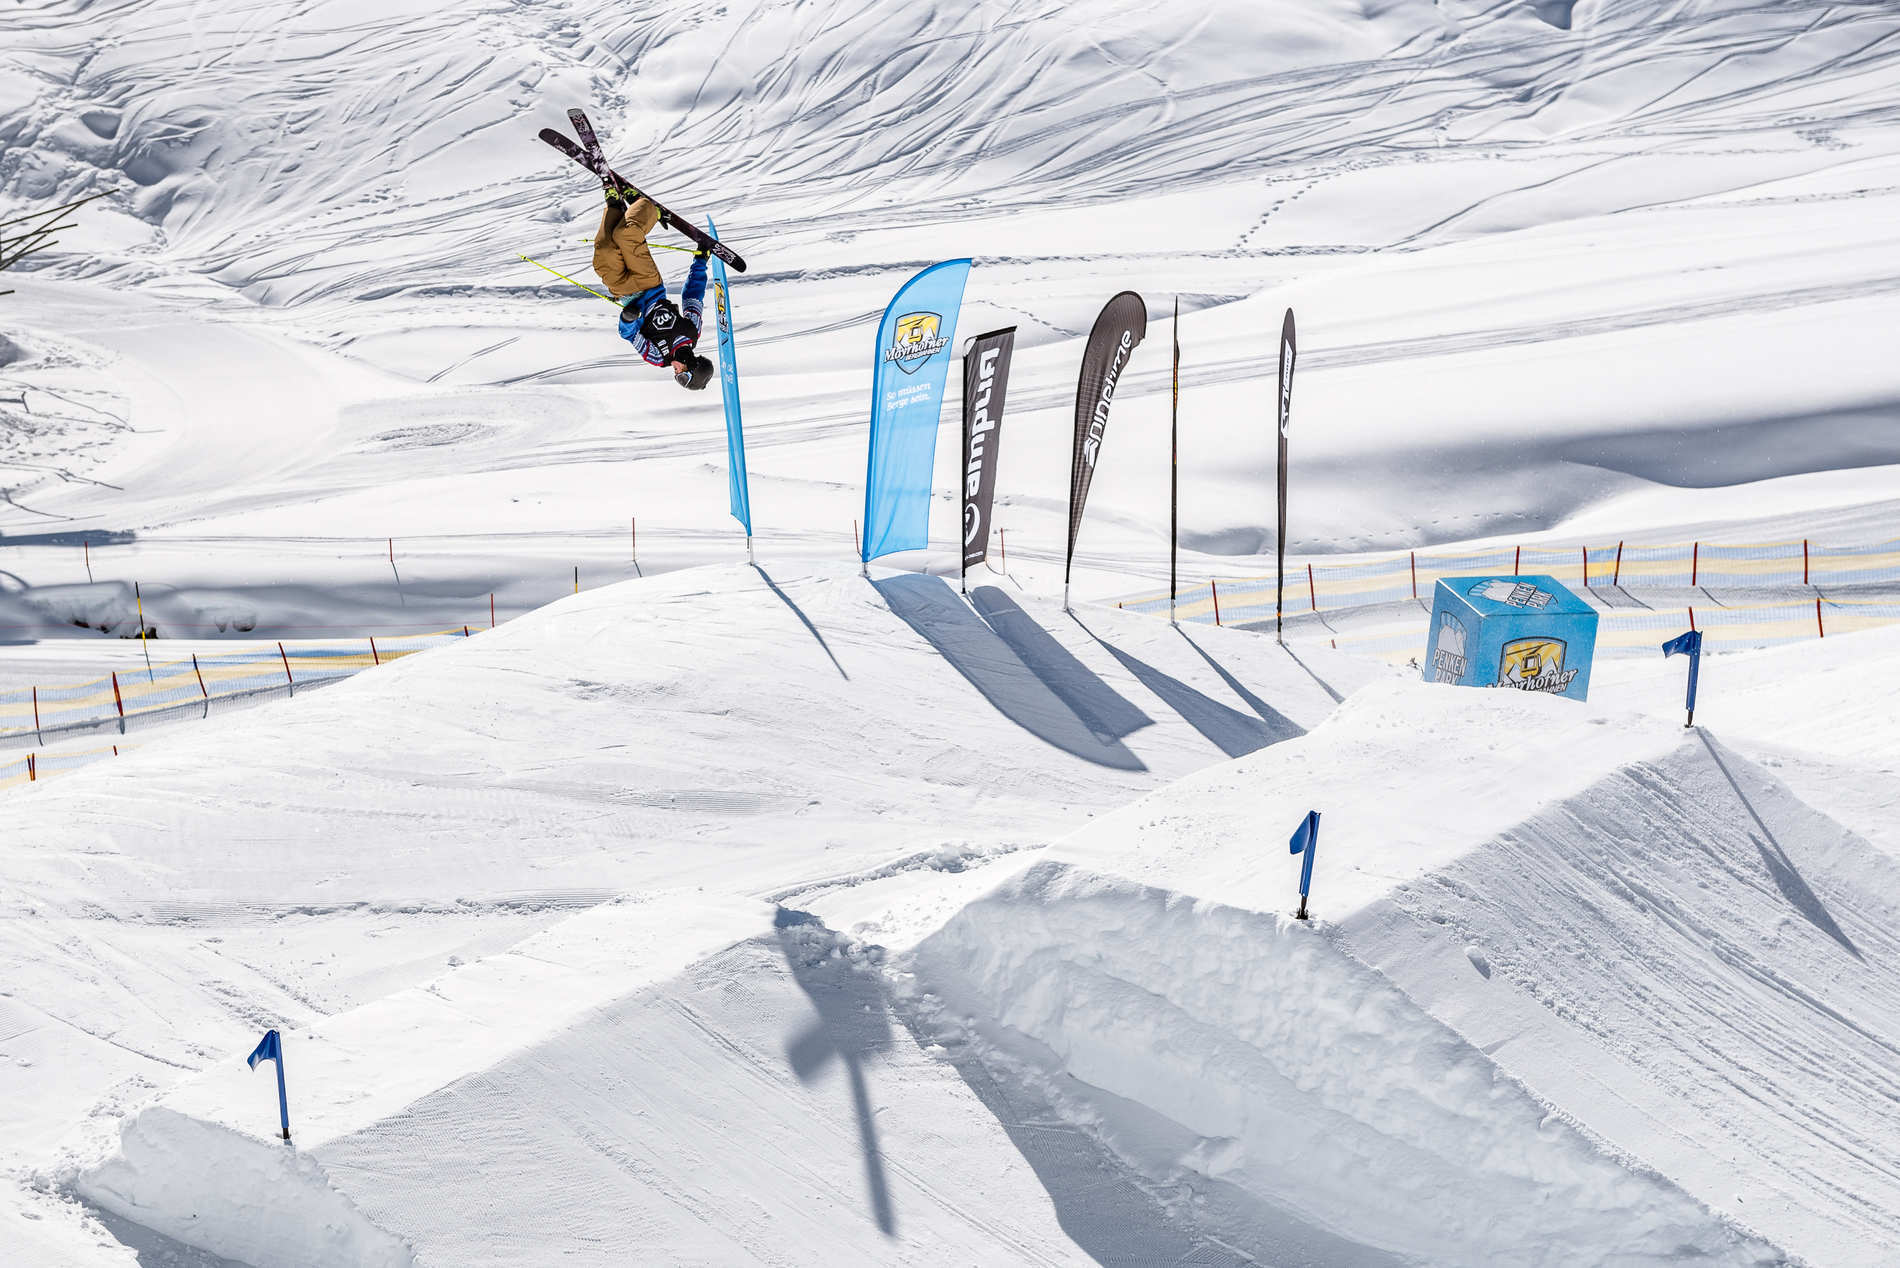 web mayrhofen 23 02 2019 action fs nicolay nordahl christian riefenberg qparks 2